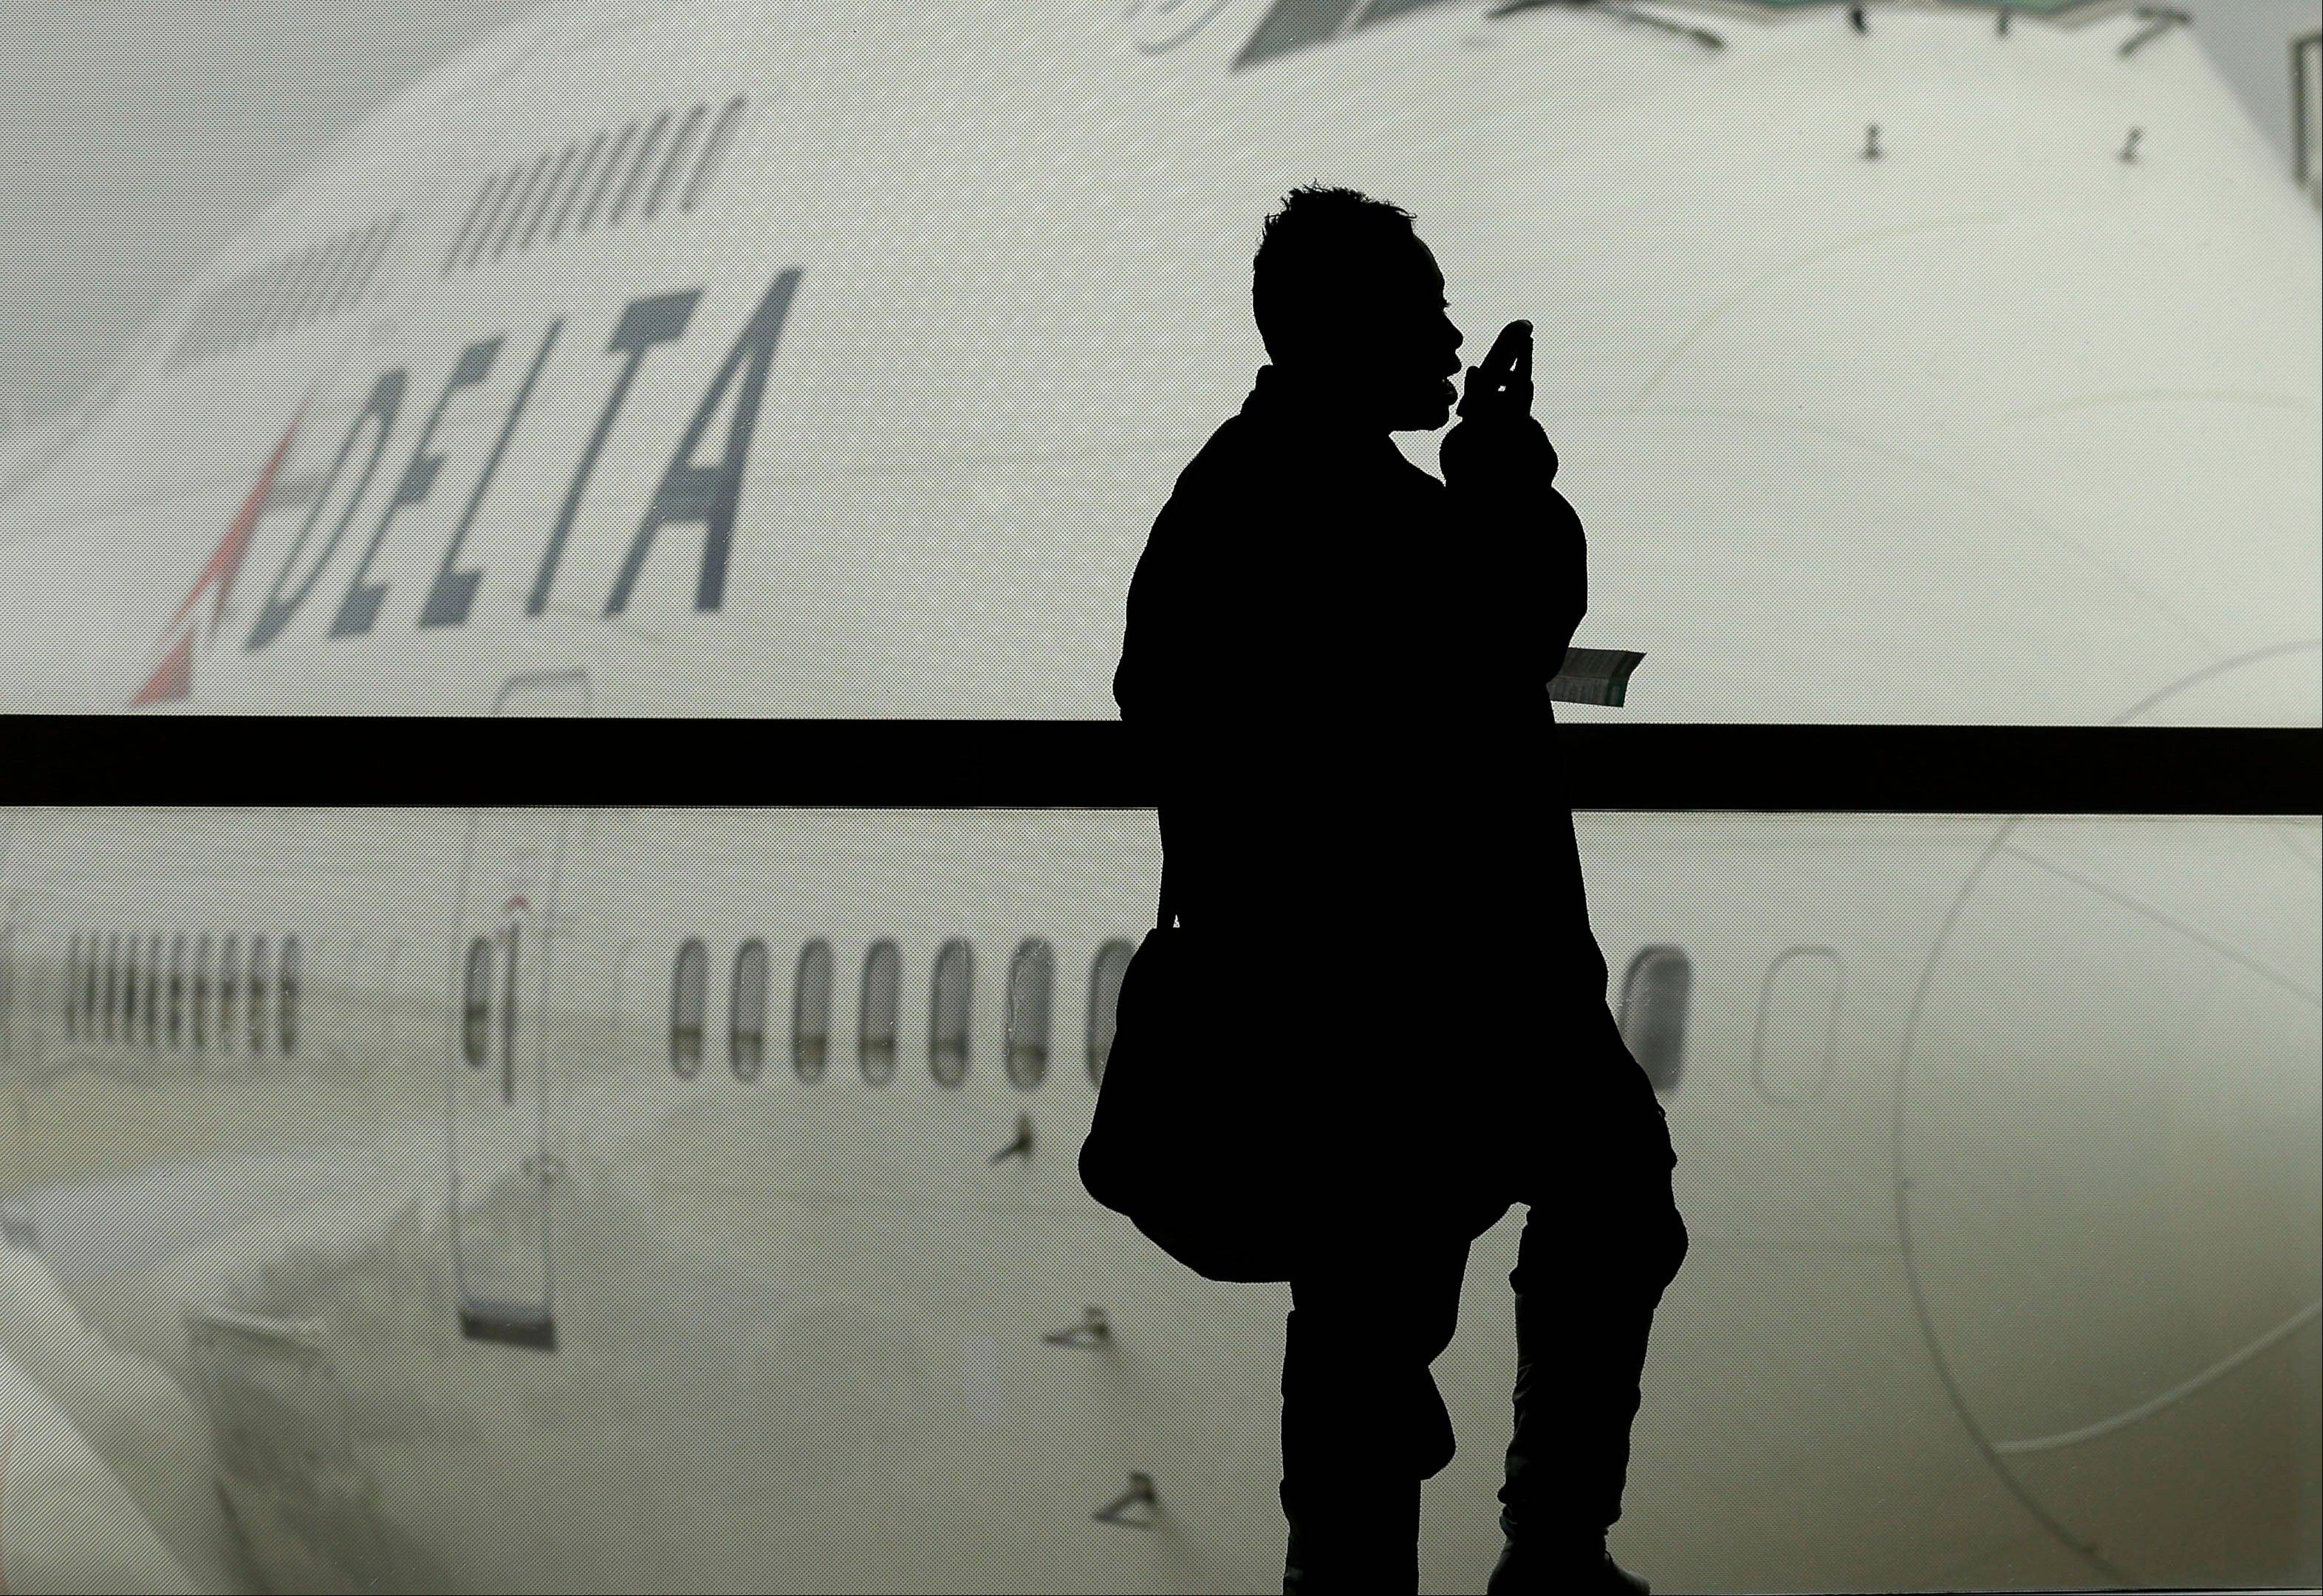 A traveler on Delta Airlines waits for her flight in Detroit. As federal regulators consider removing a decades-old prohibition on making phone calls on planes, a majority of frequent air travelers oppose such a change, a new Associated Press poll found Wednesday.